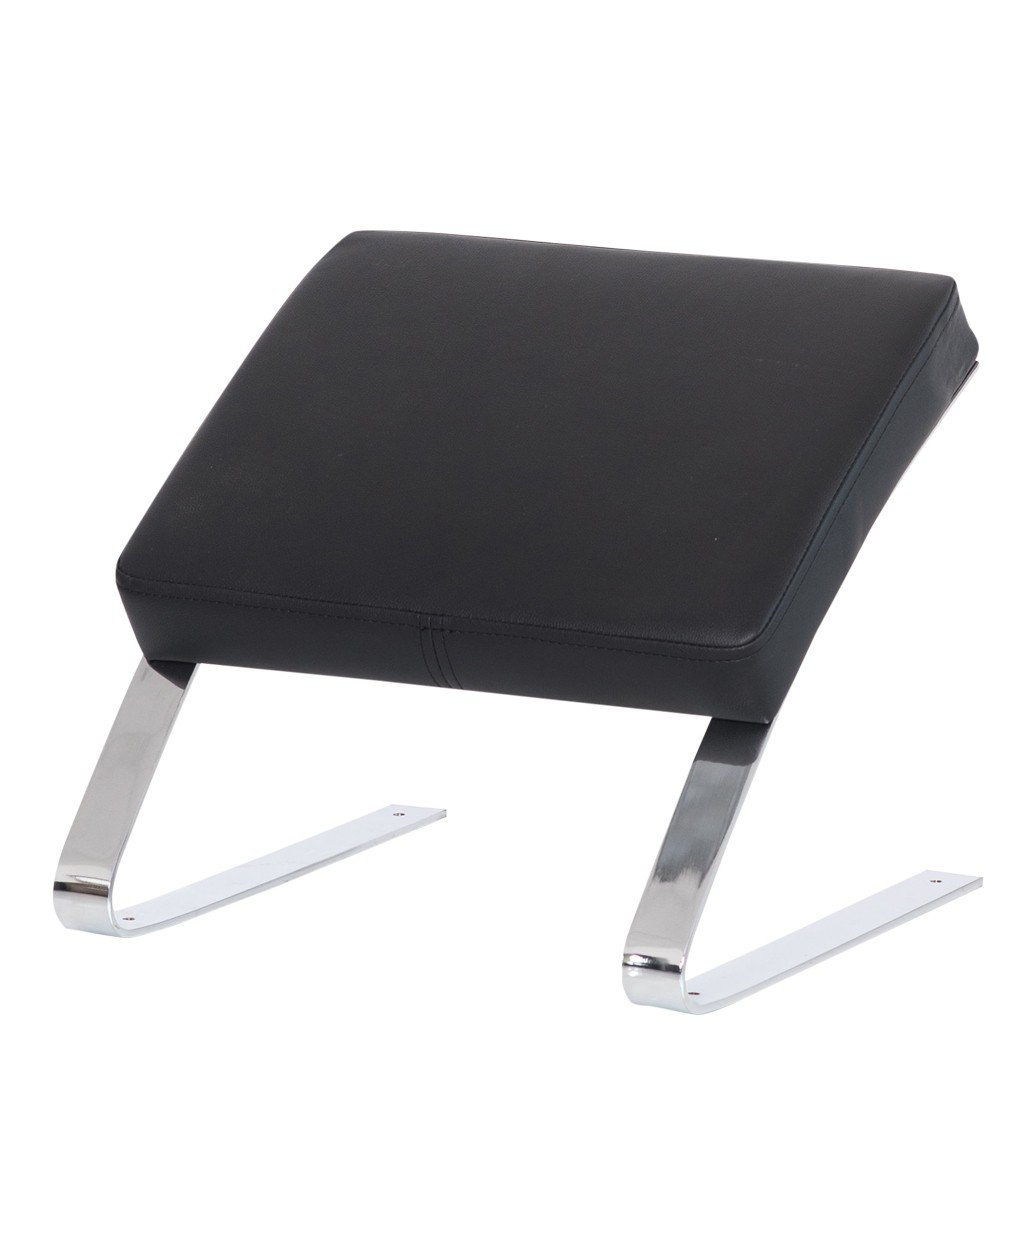 Deluxe Footrest Ottoman for Salons, Stylists and Spa Backwash Systems, Features Ergonomic Angle for Comfort, Padded Black Cushion, Sleek Chrome Legs, TS-0807